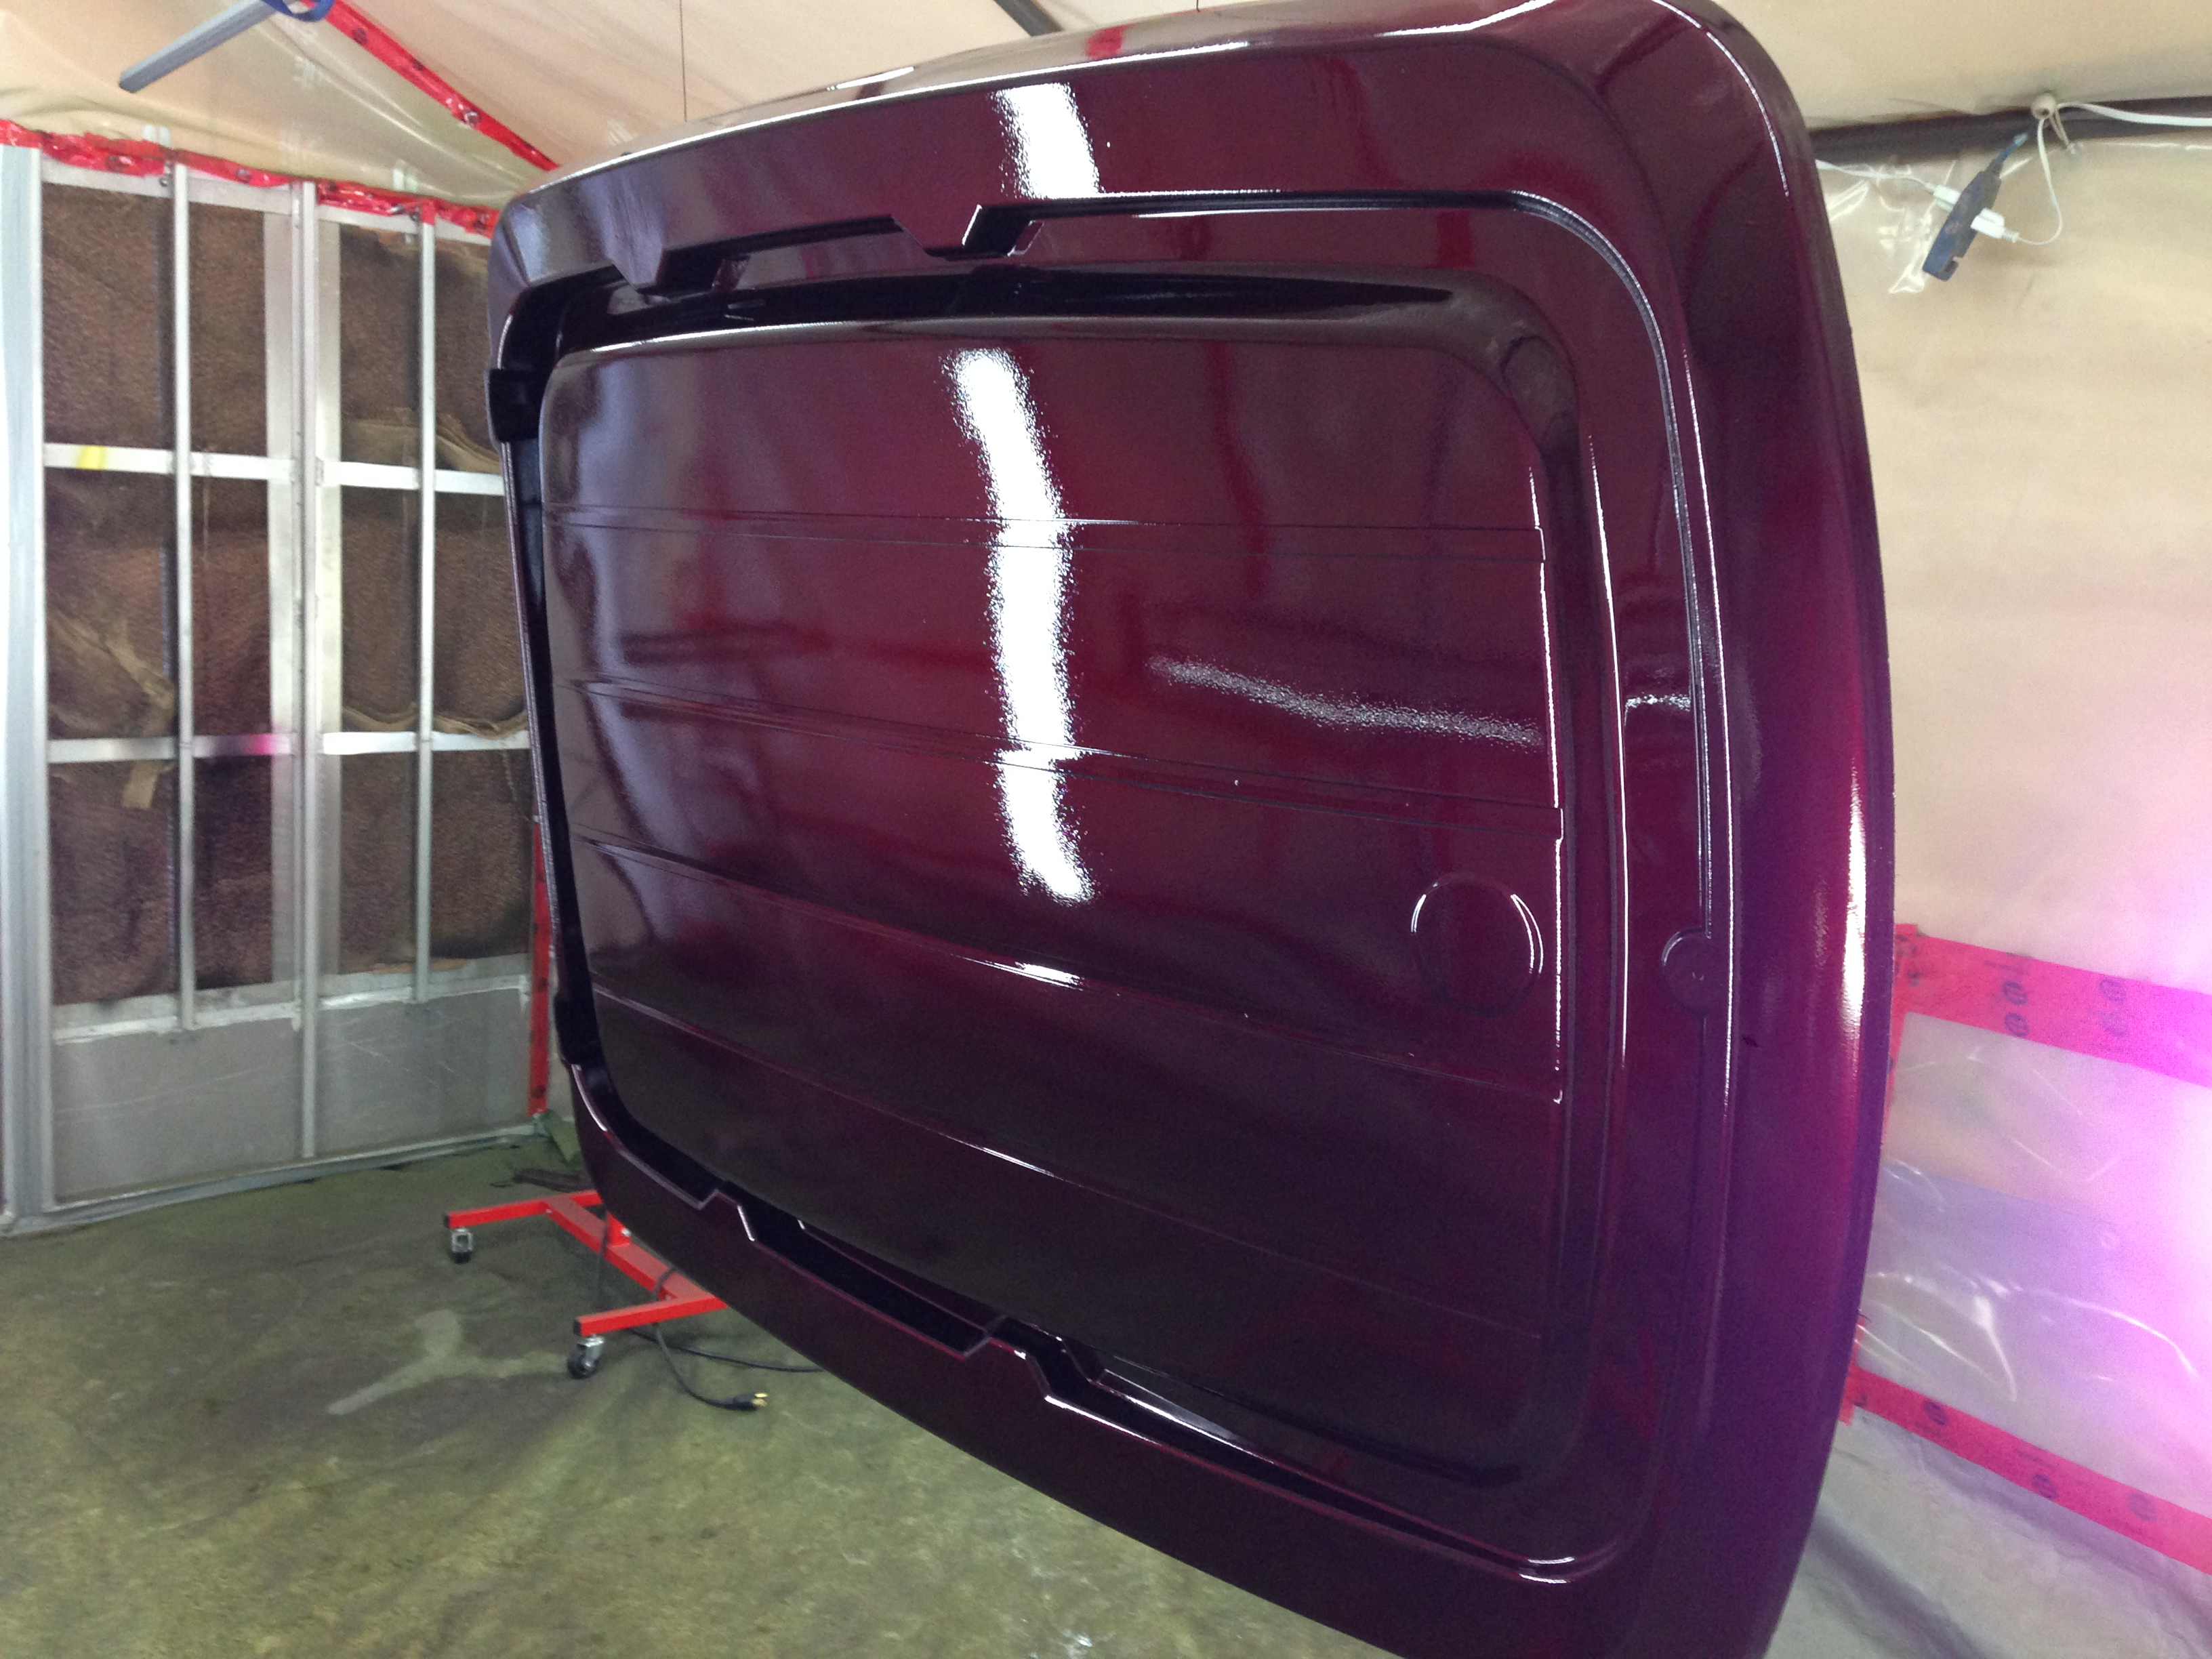 Sc carts pouce coupe bc custom golf cart part 4 sc carts here is the roof in the amazing matching house of kolors kandy paint with 3 coats nvjuhfo Gallery